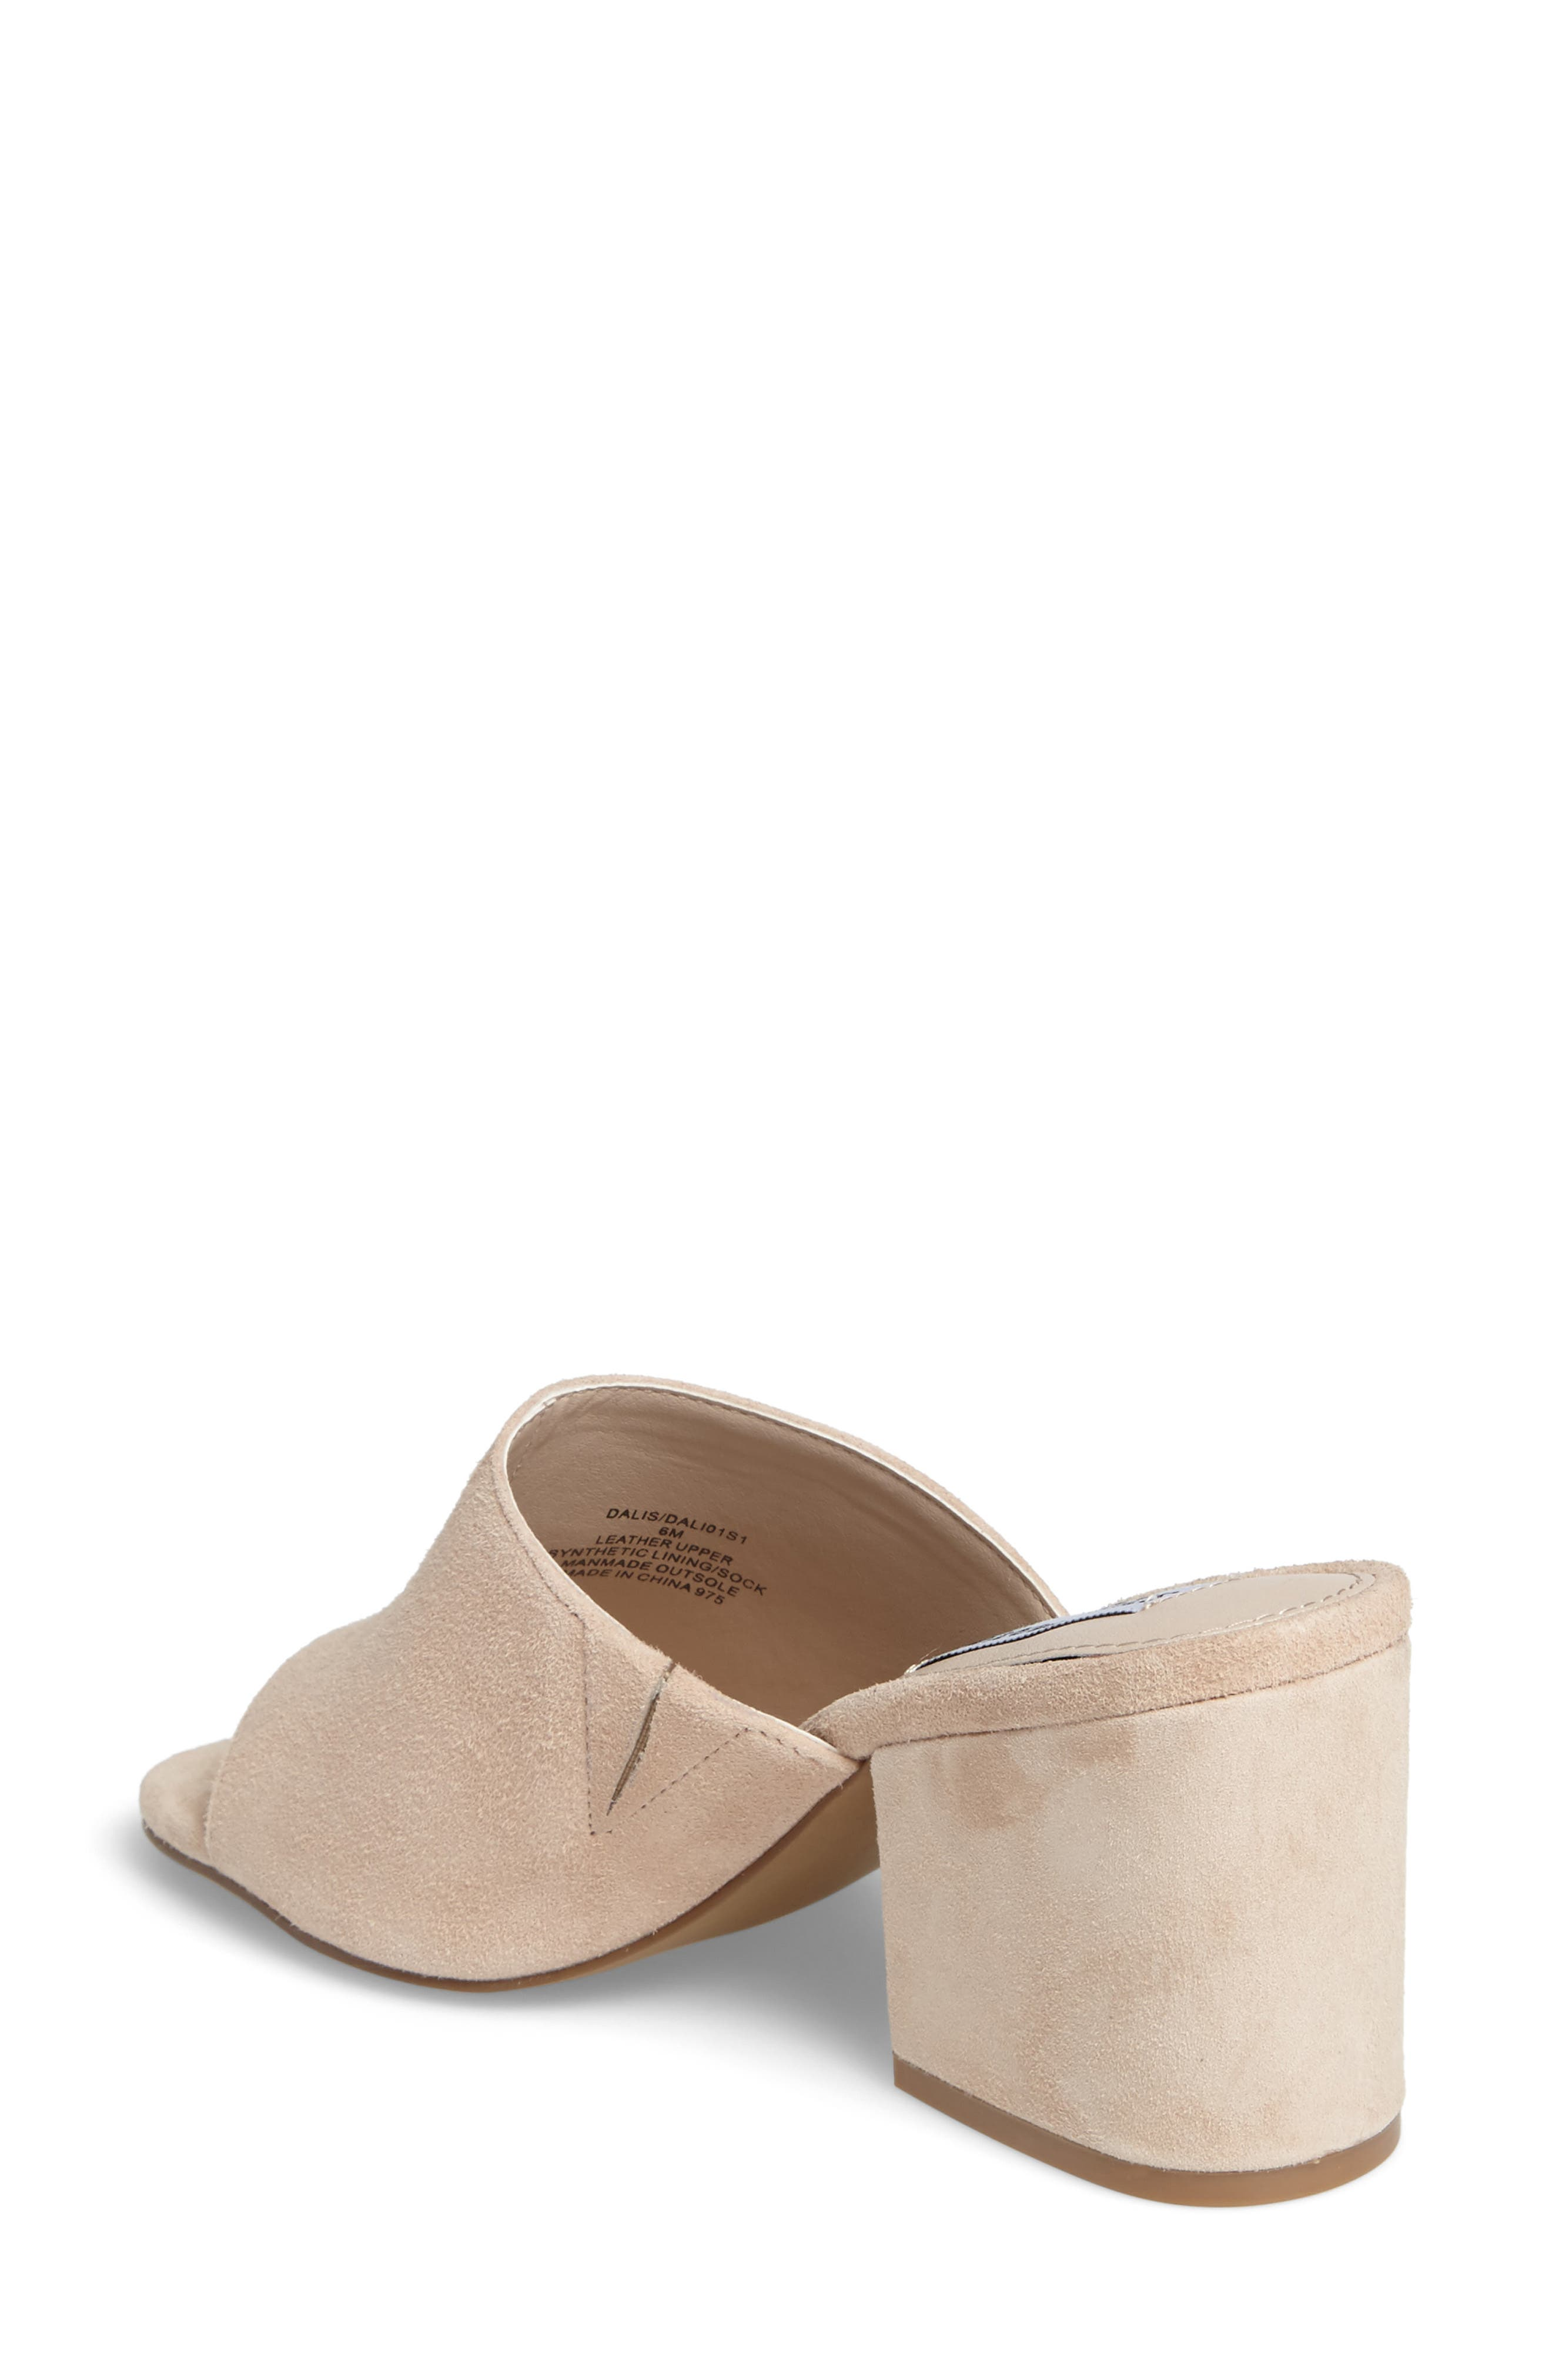 Alternate Image 2  - Steve Madden Dalis Slide Sandal (Women)